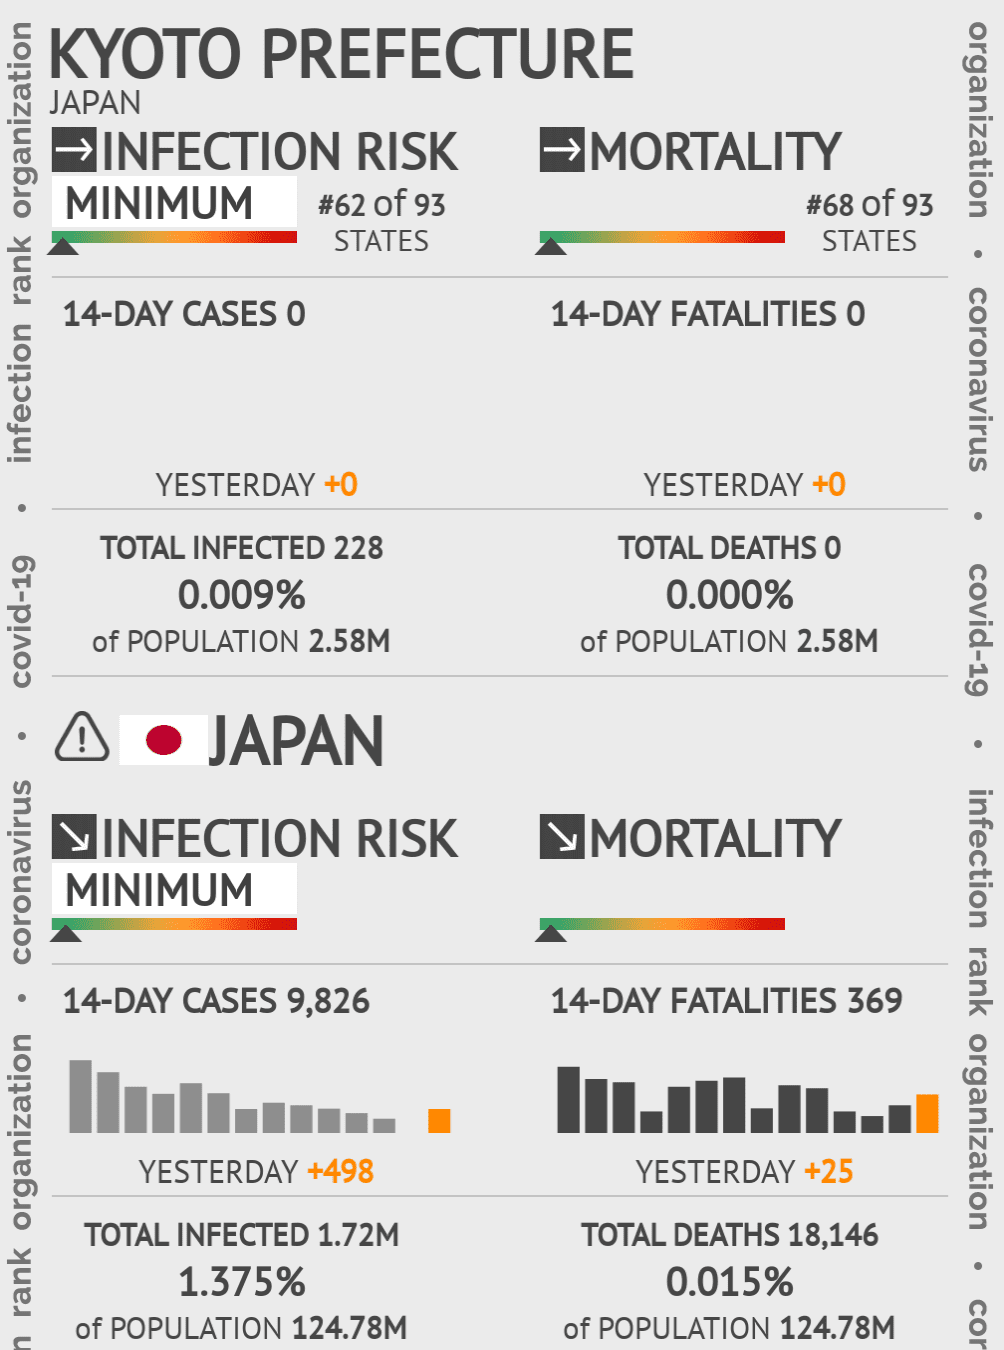 Kyoto Prefecture Coronavirus Covid-19 Risk of Infection on May 14, 2020